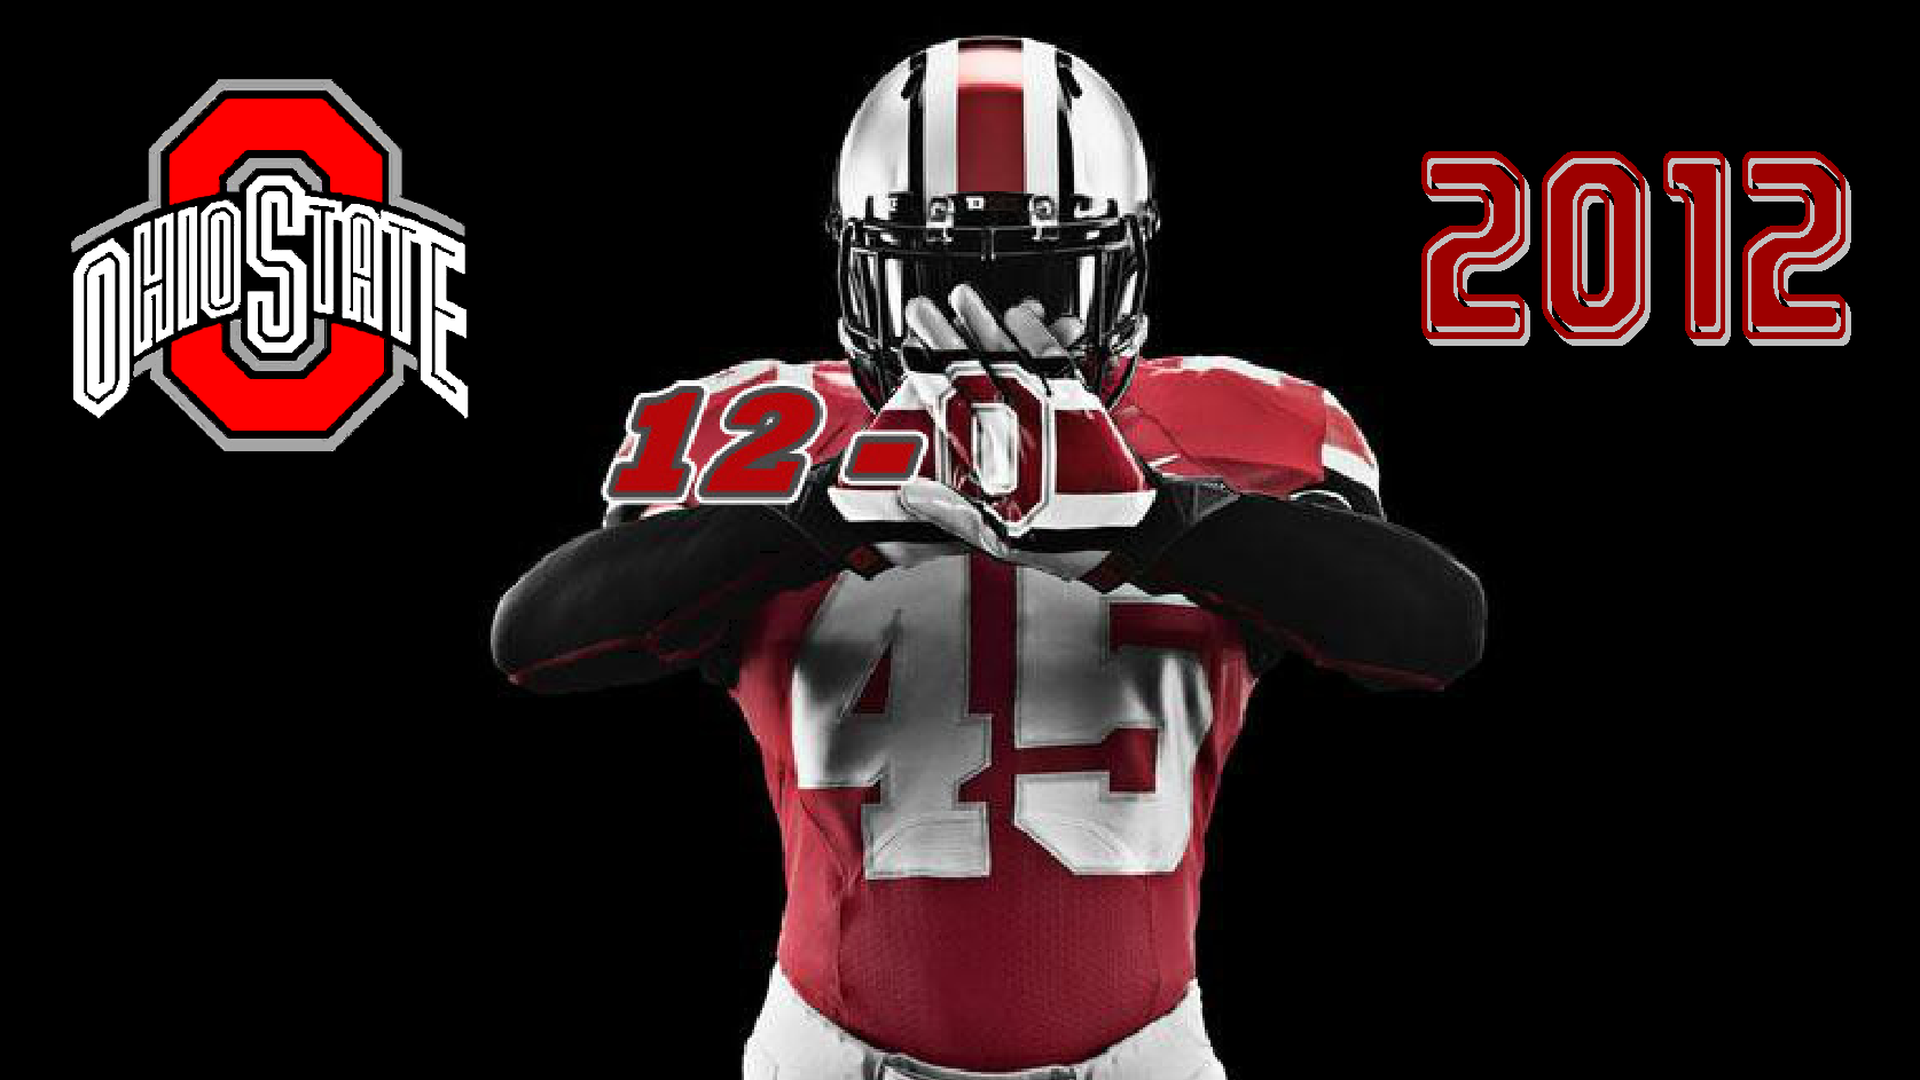 OHIO STATE 12-0 2012 - Ohio State Football Wallpaper (32854436 ...